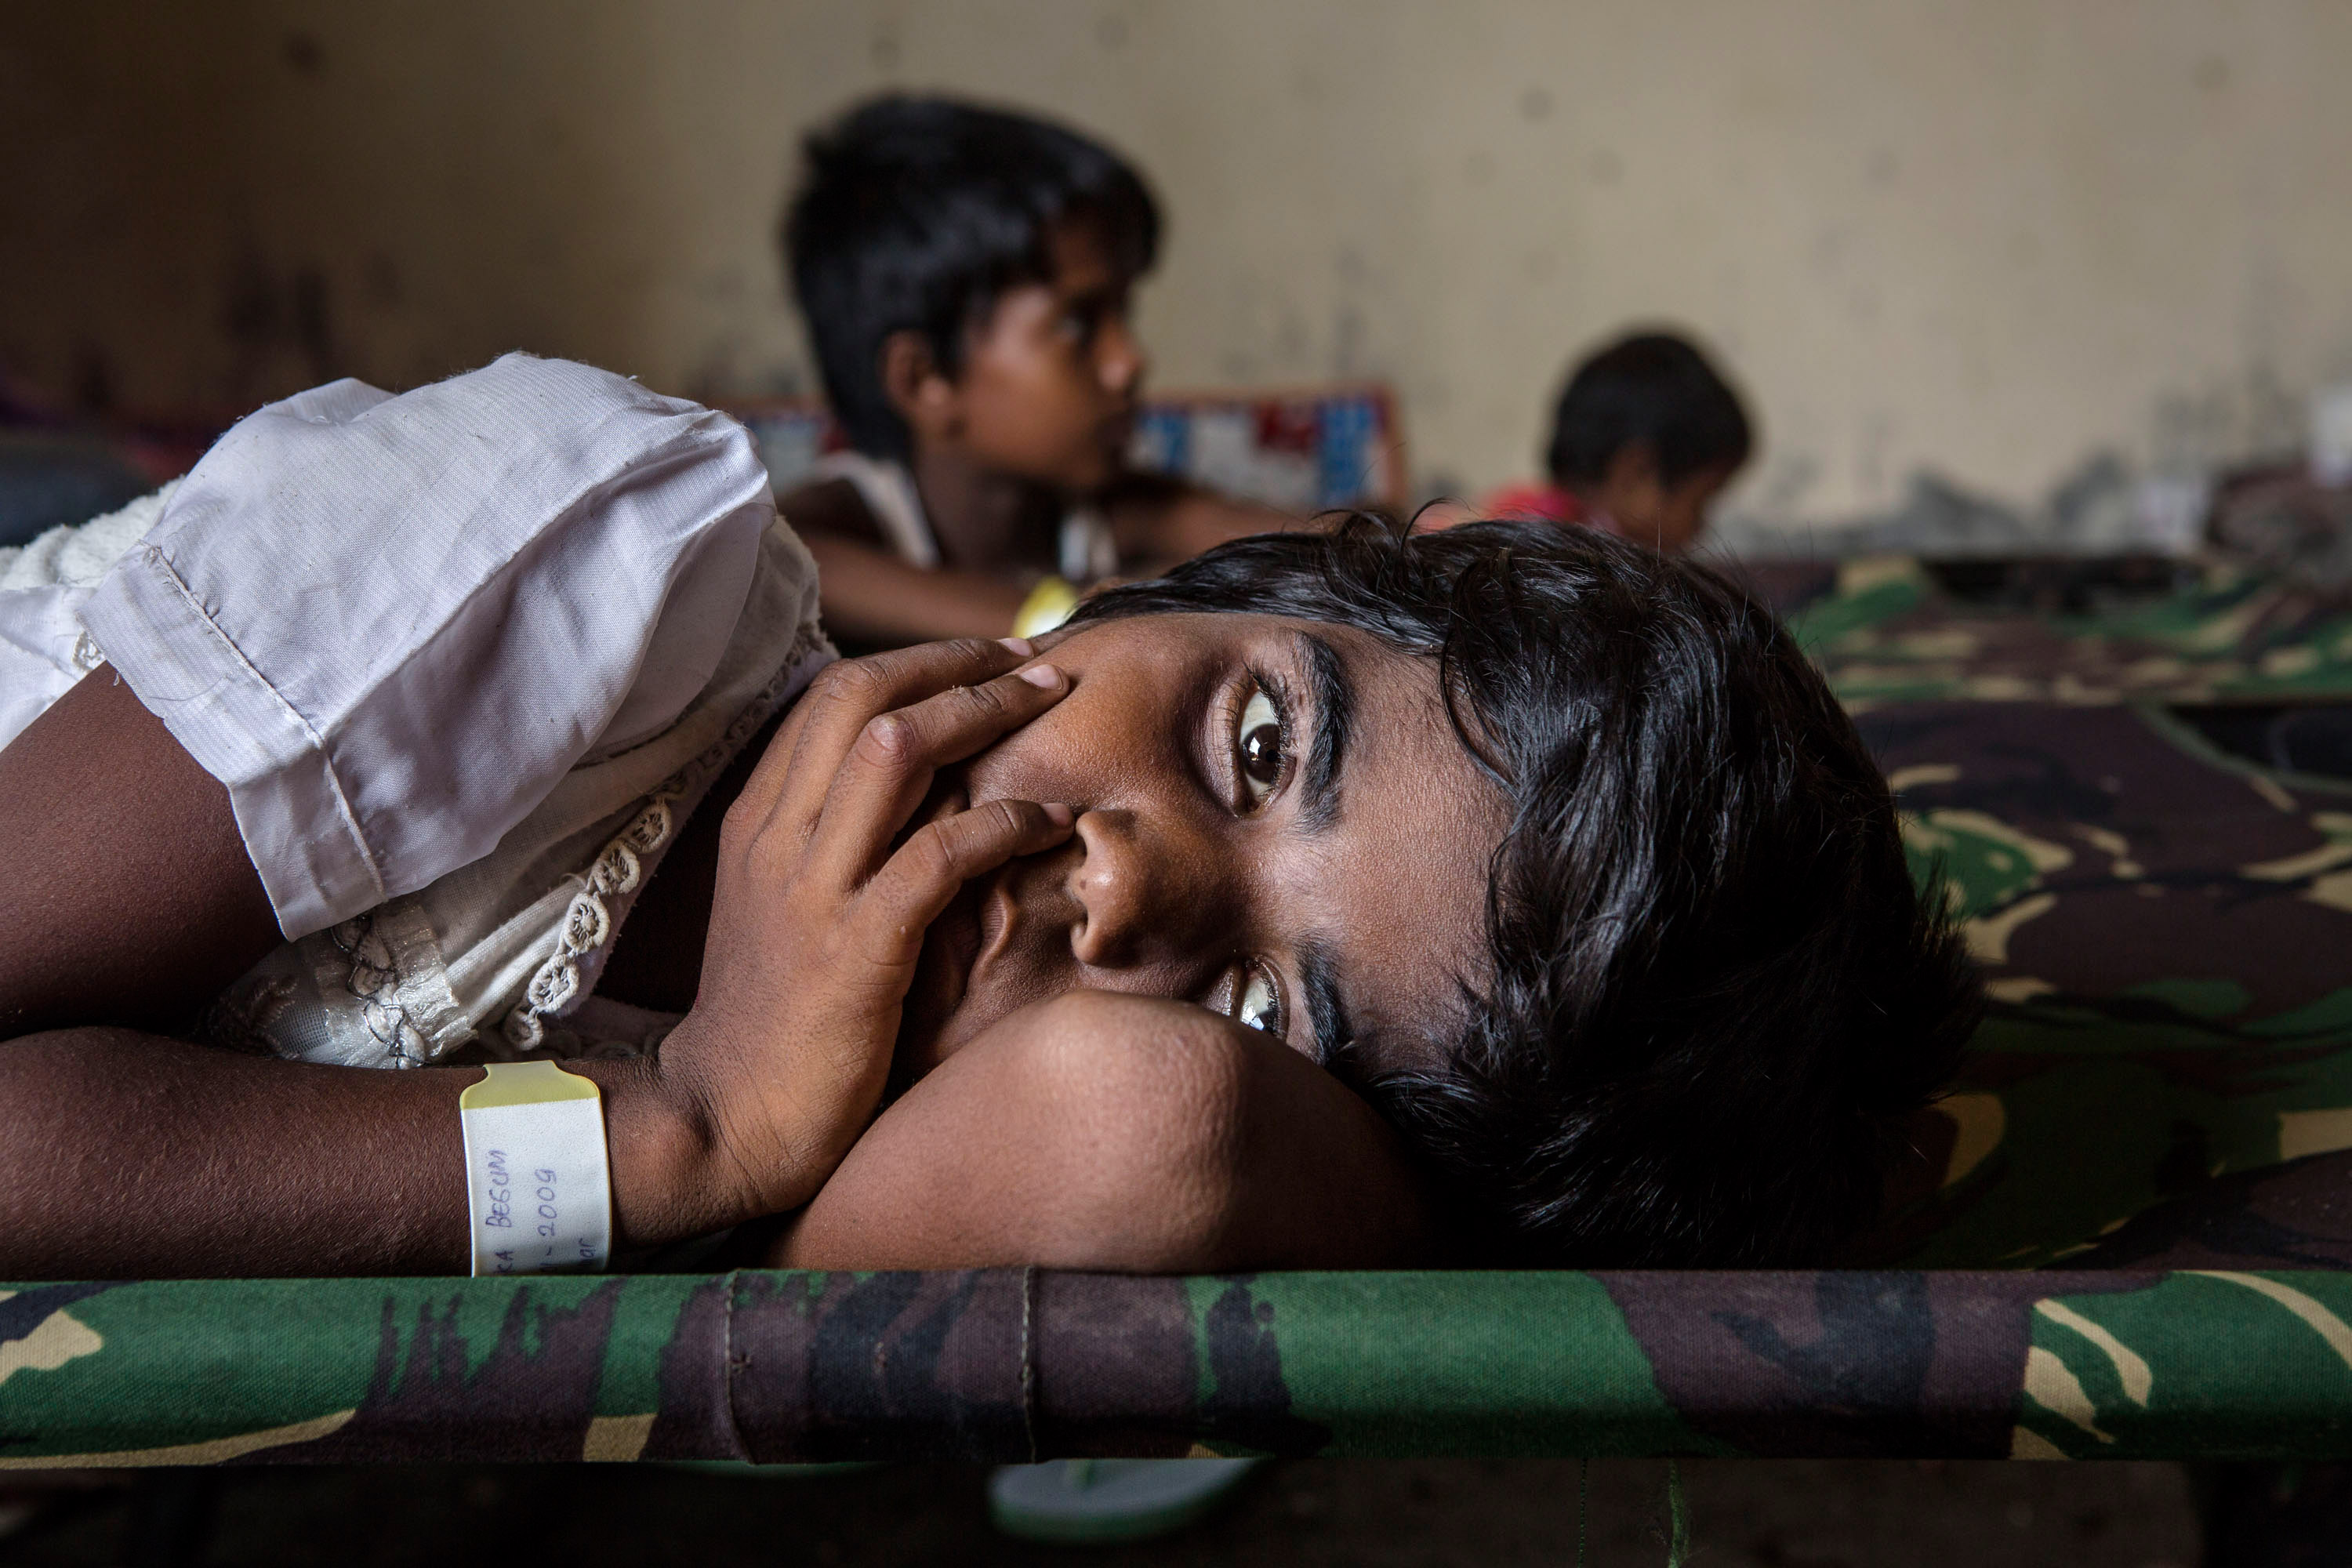 Hundreds of Myanmar's Rohingya refugees arrived in Indonesia on May 15, 2015. Thousands more are believed to still be stranded at sea reportedly with no country in the region willing to take them in. (Ulet Ifansasti/Getty Images)